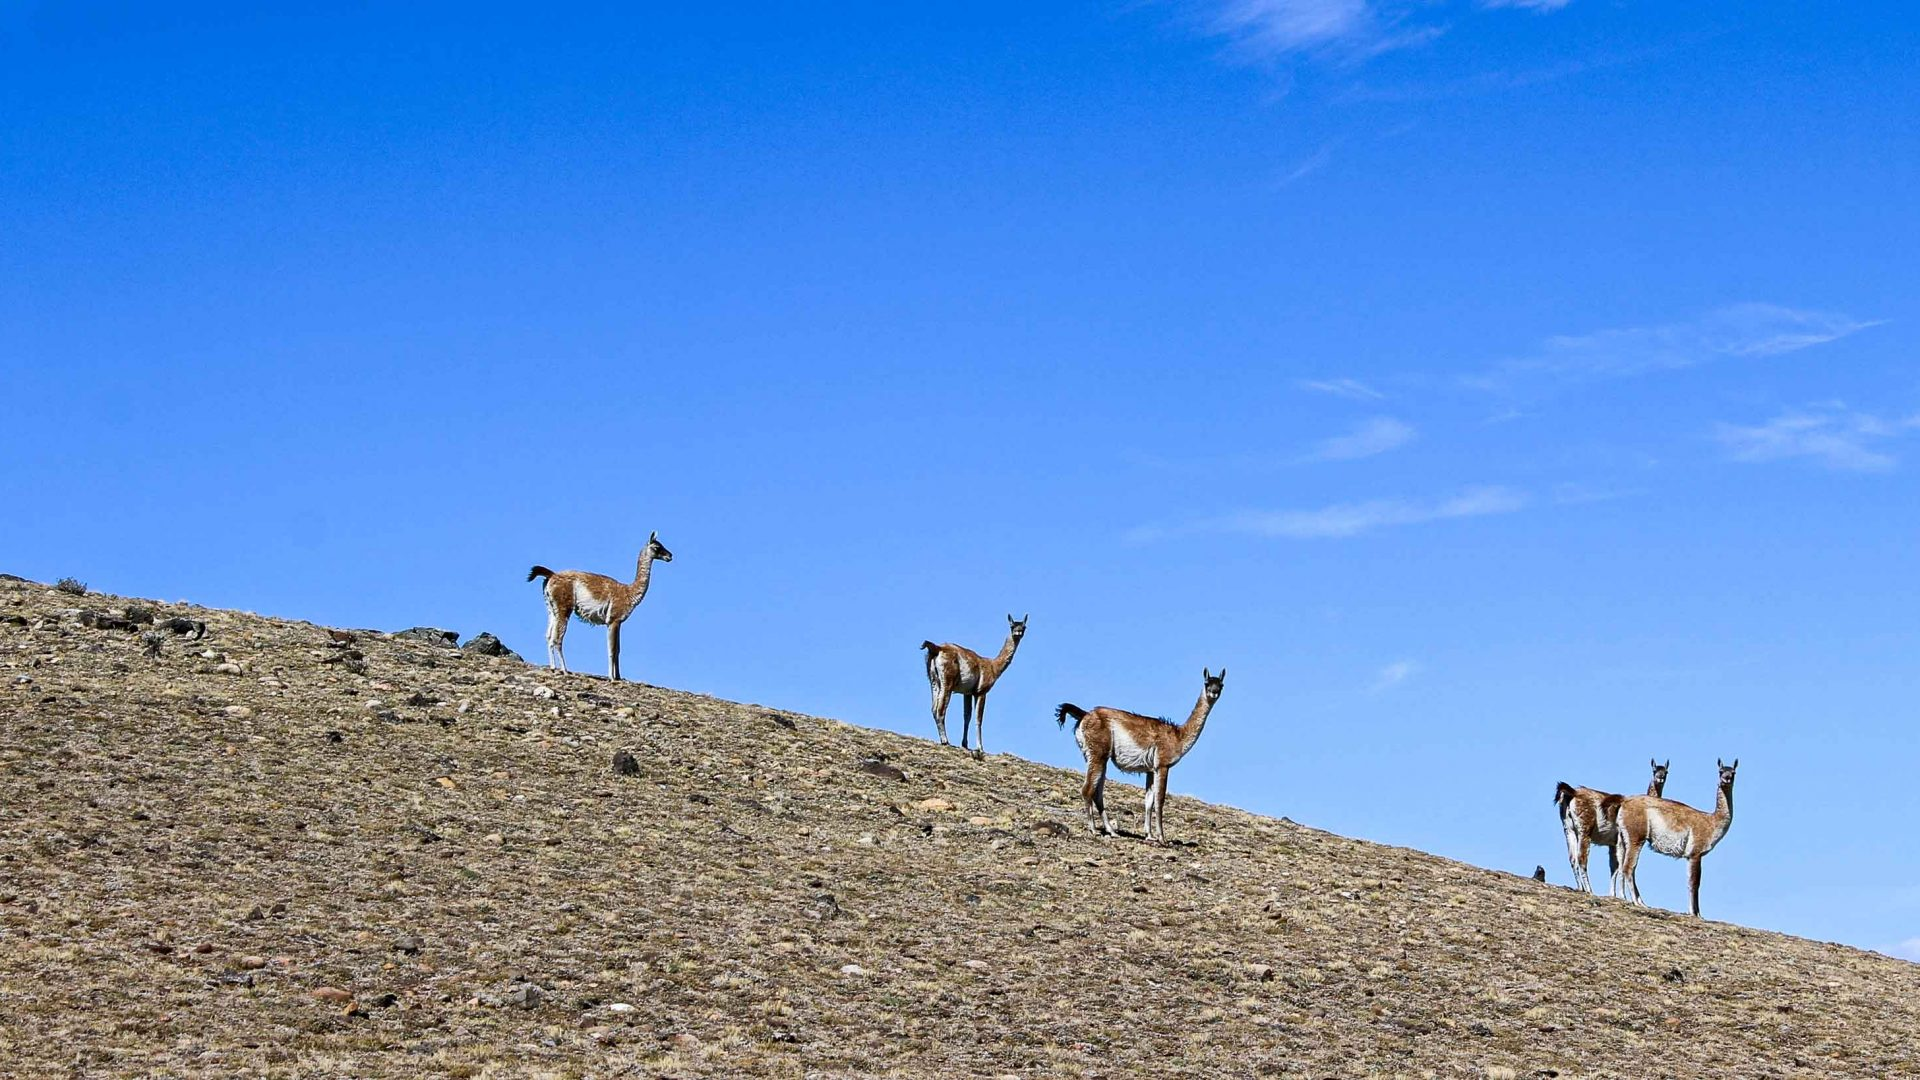 Guanacos, similar to llamas, pause on a hillside near the river.